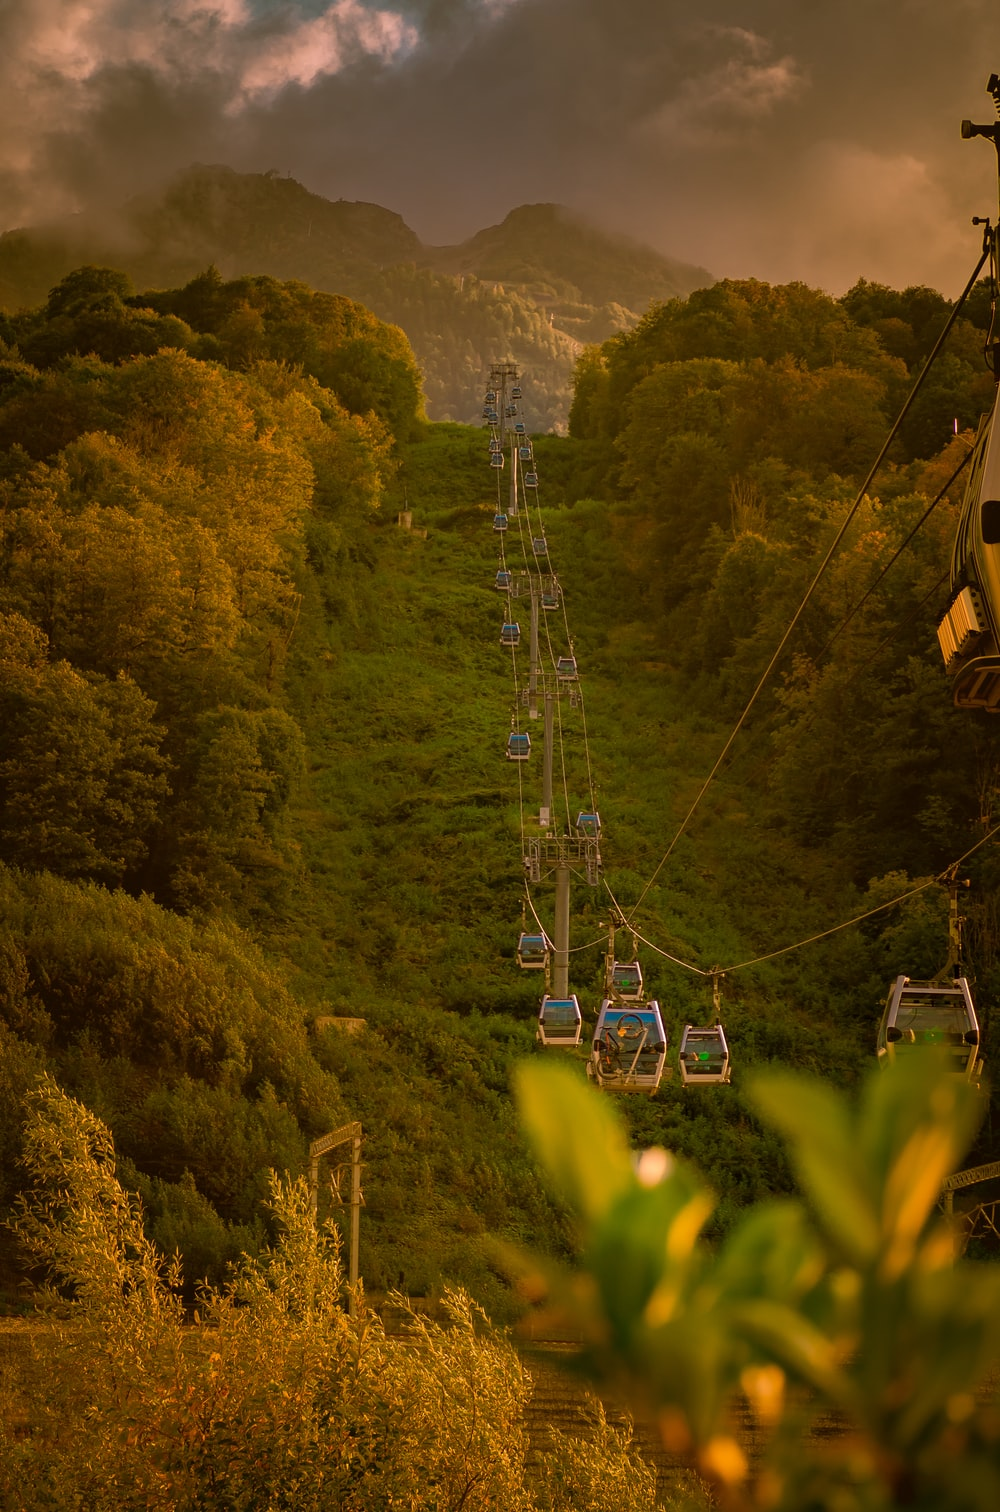 cable cars over green trees during daytime